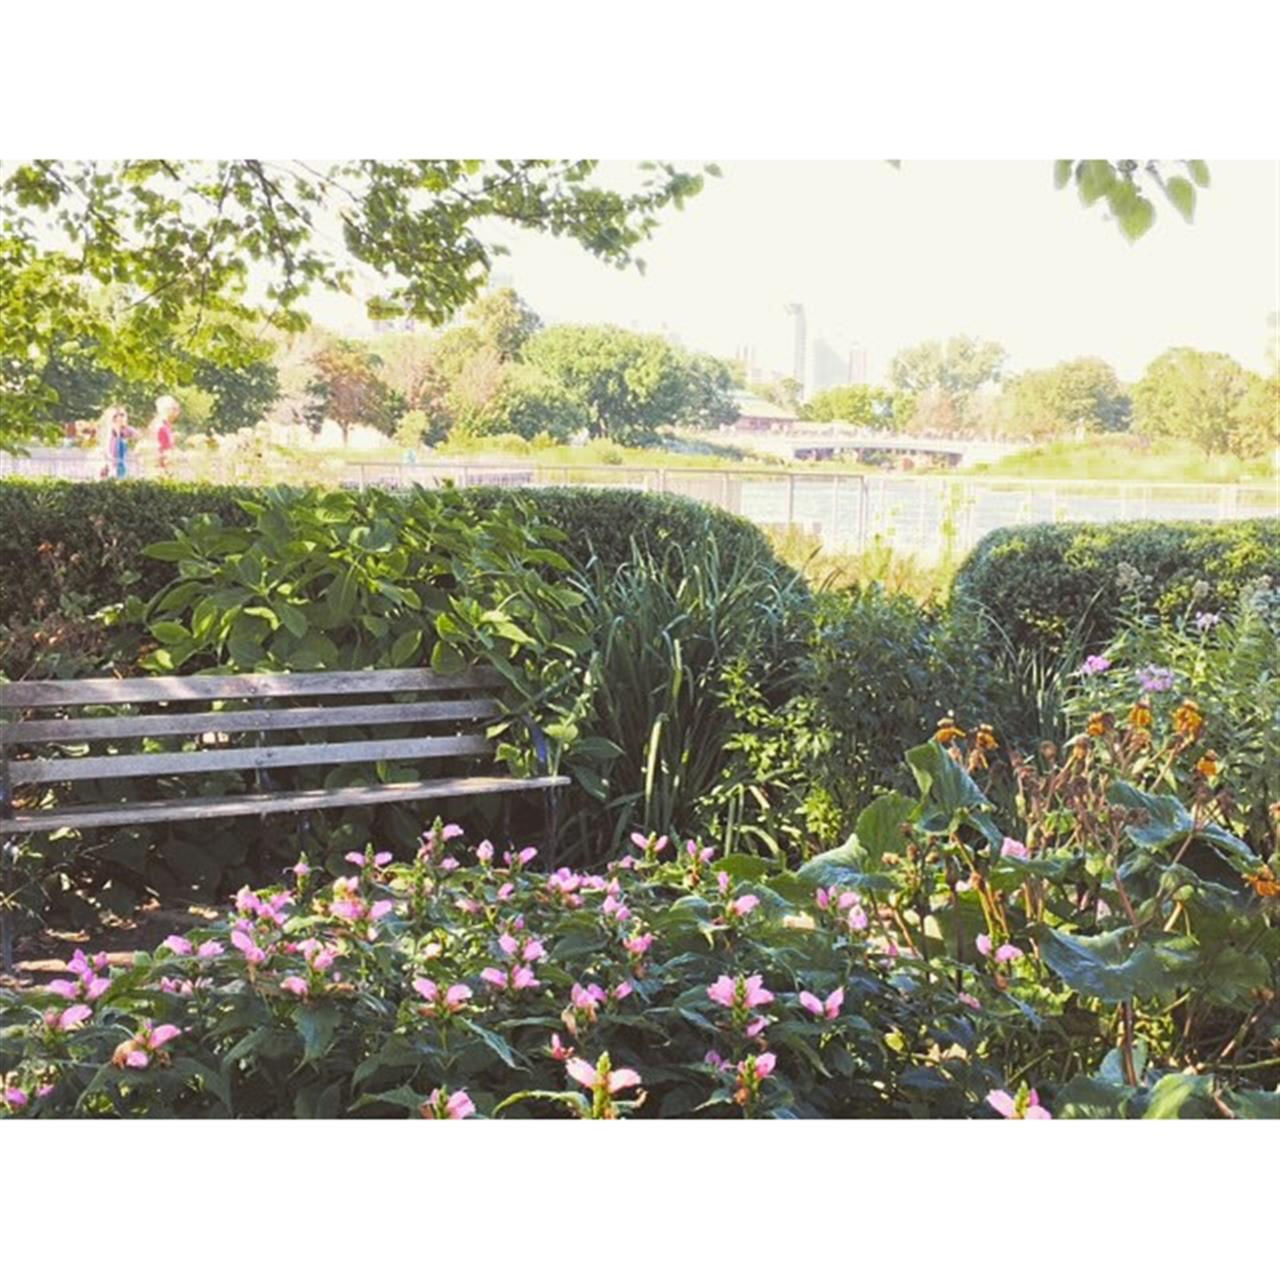 Stop and stay for awhile #chicago #lincolnpark #northpond #leadingrelocal #walkabout